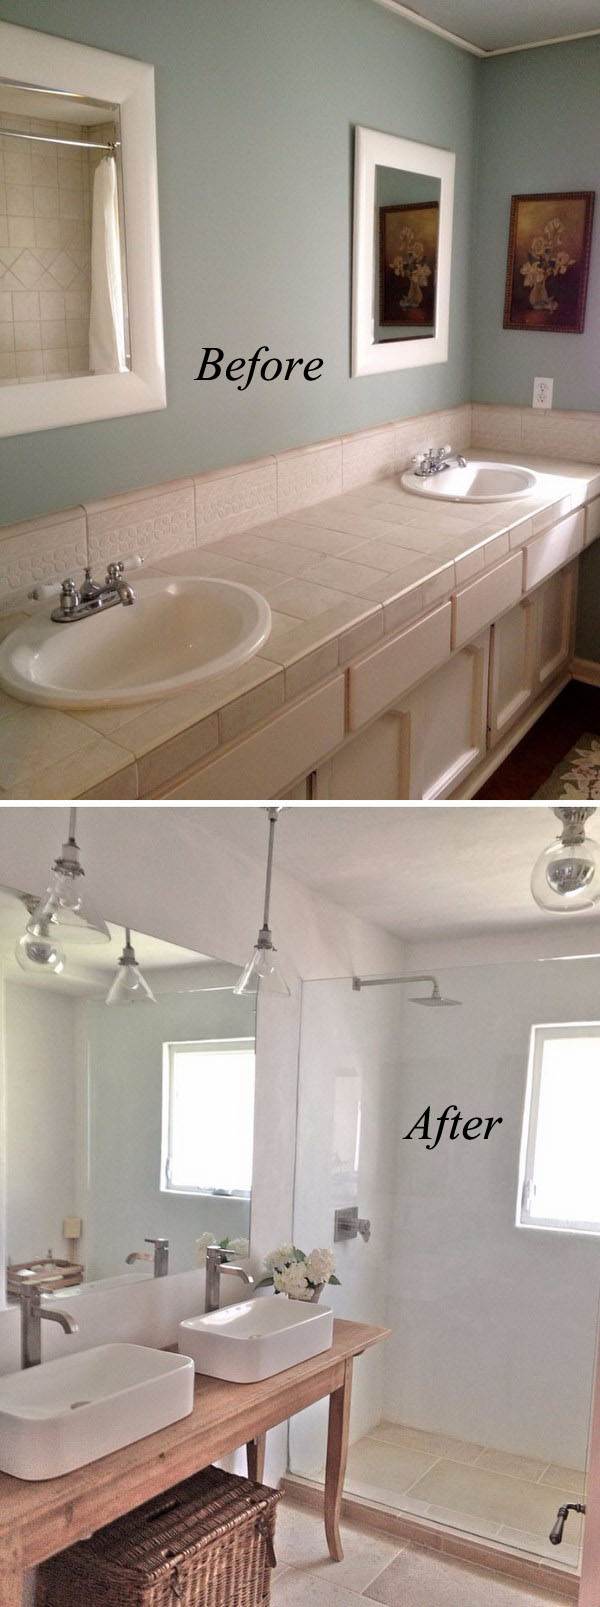 Clean And Crisp Bathroom Renovation.